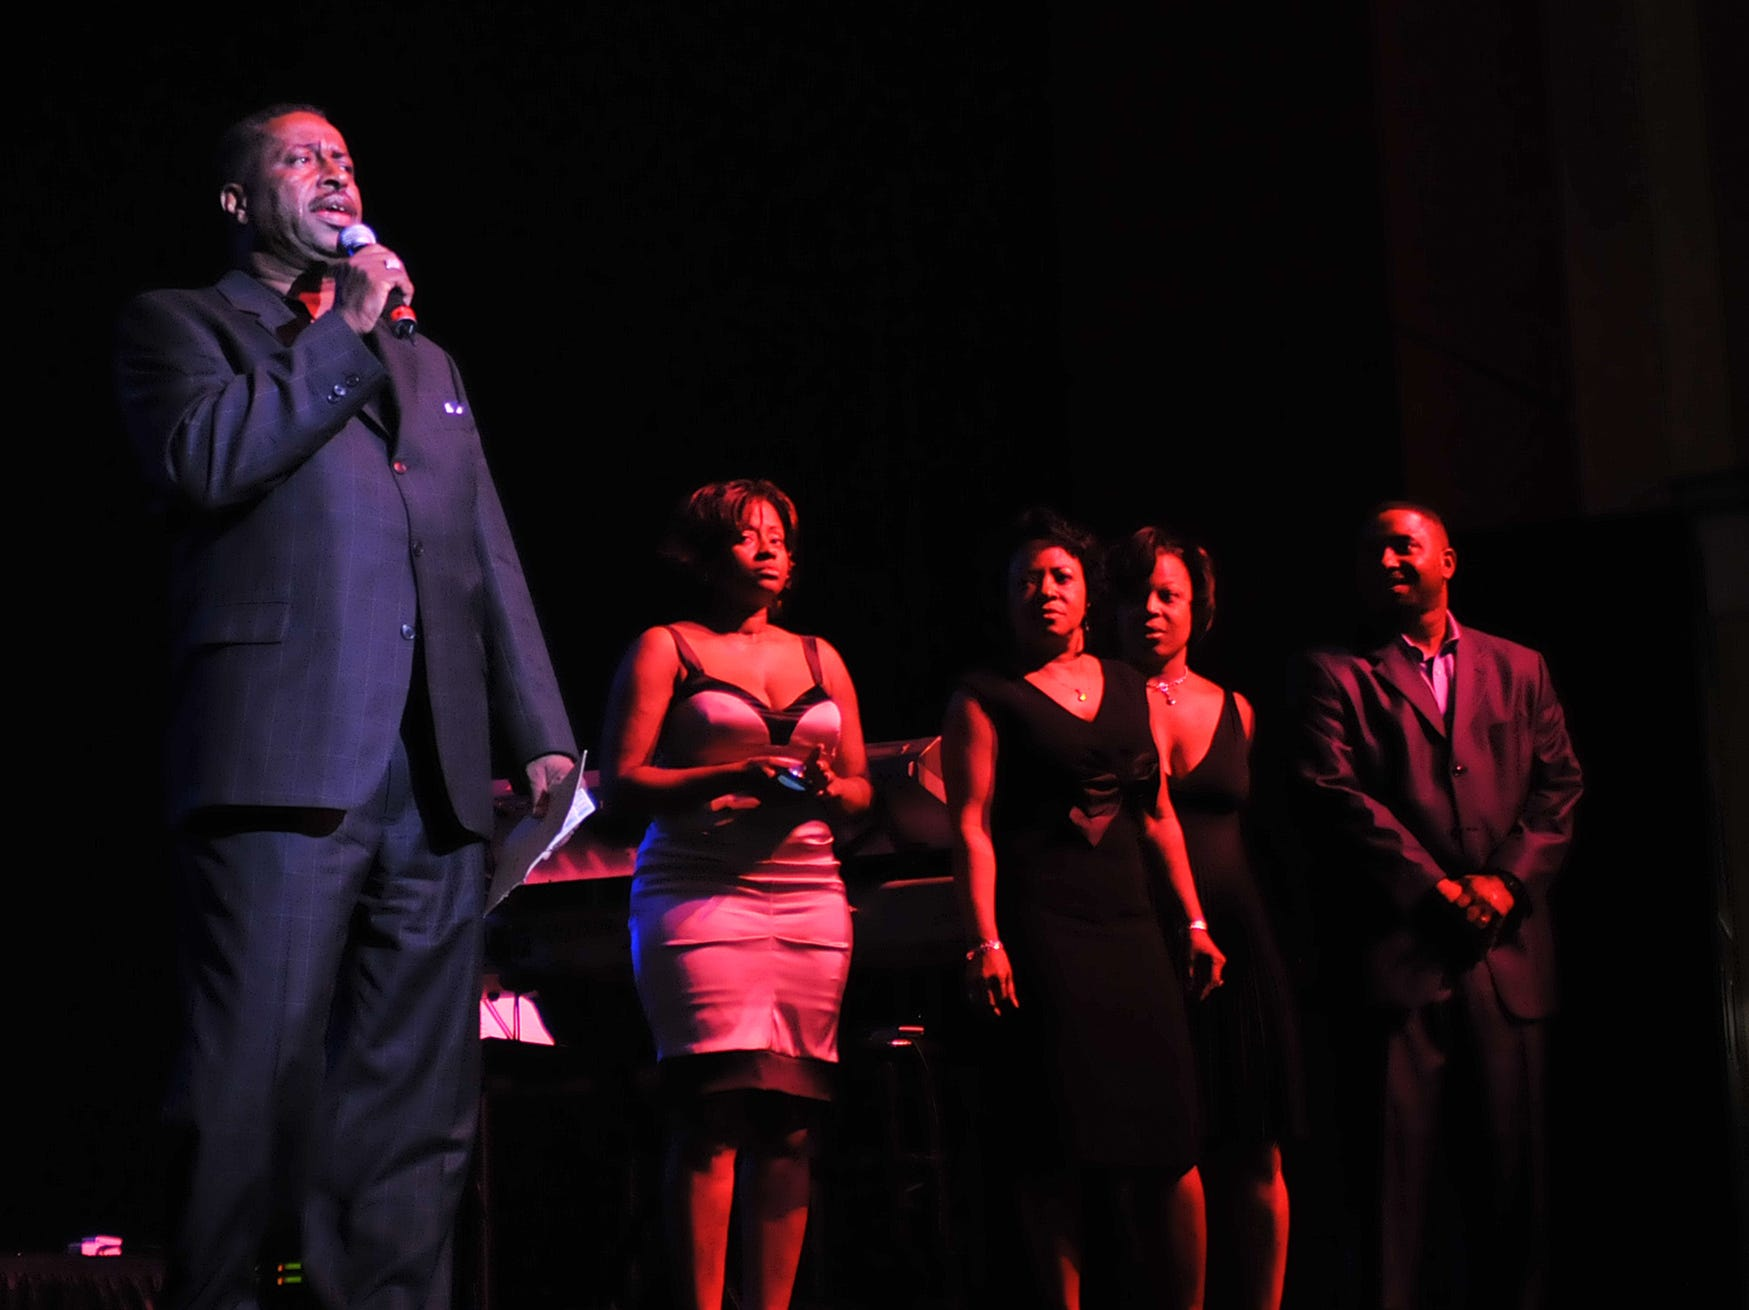 Greg Calhoun speaks to the crowd about his foundation before the Smokey Robinson concert at the Montgomery Performing Arts Centre on Saturday, July 26, 2008. (Montgomery Advertiser, Amanda Sowards)